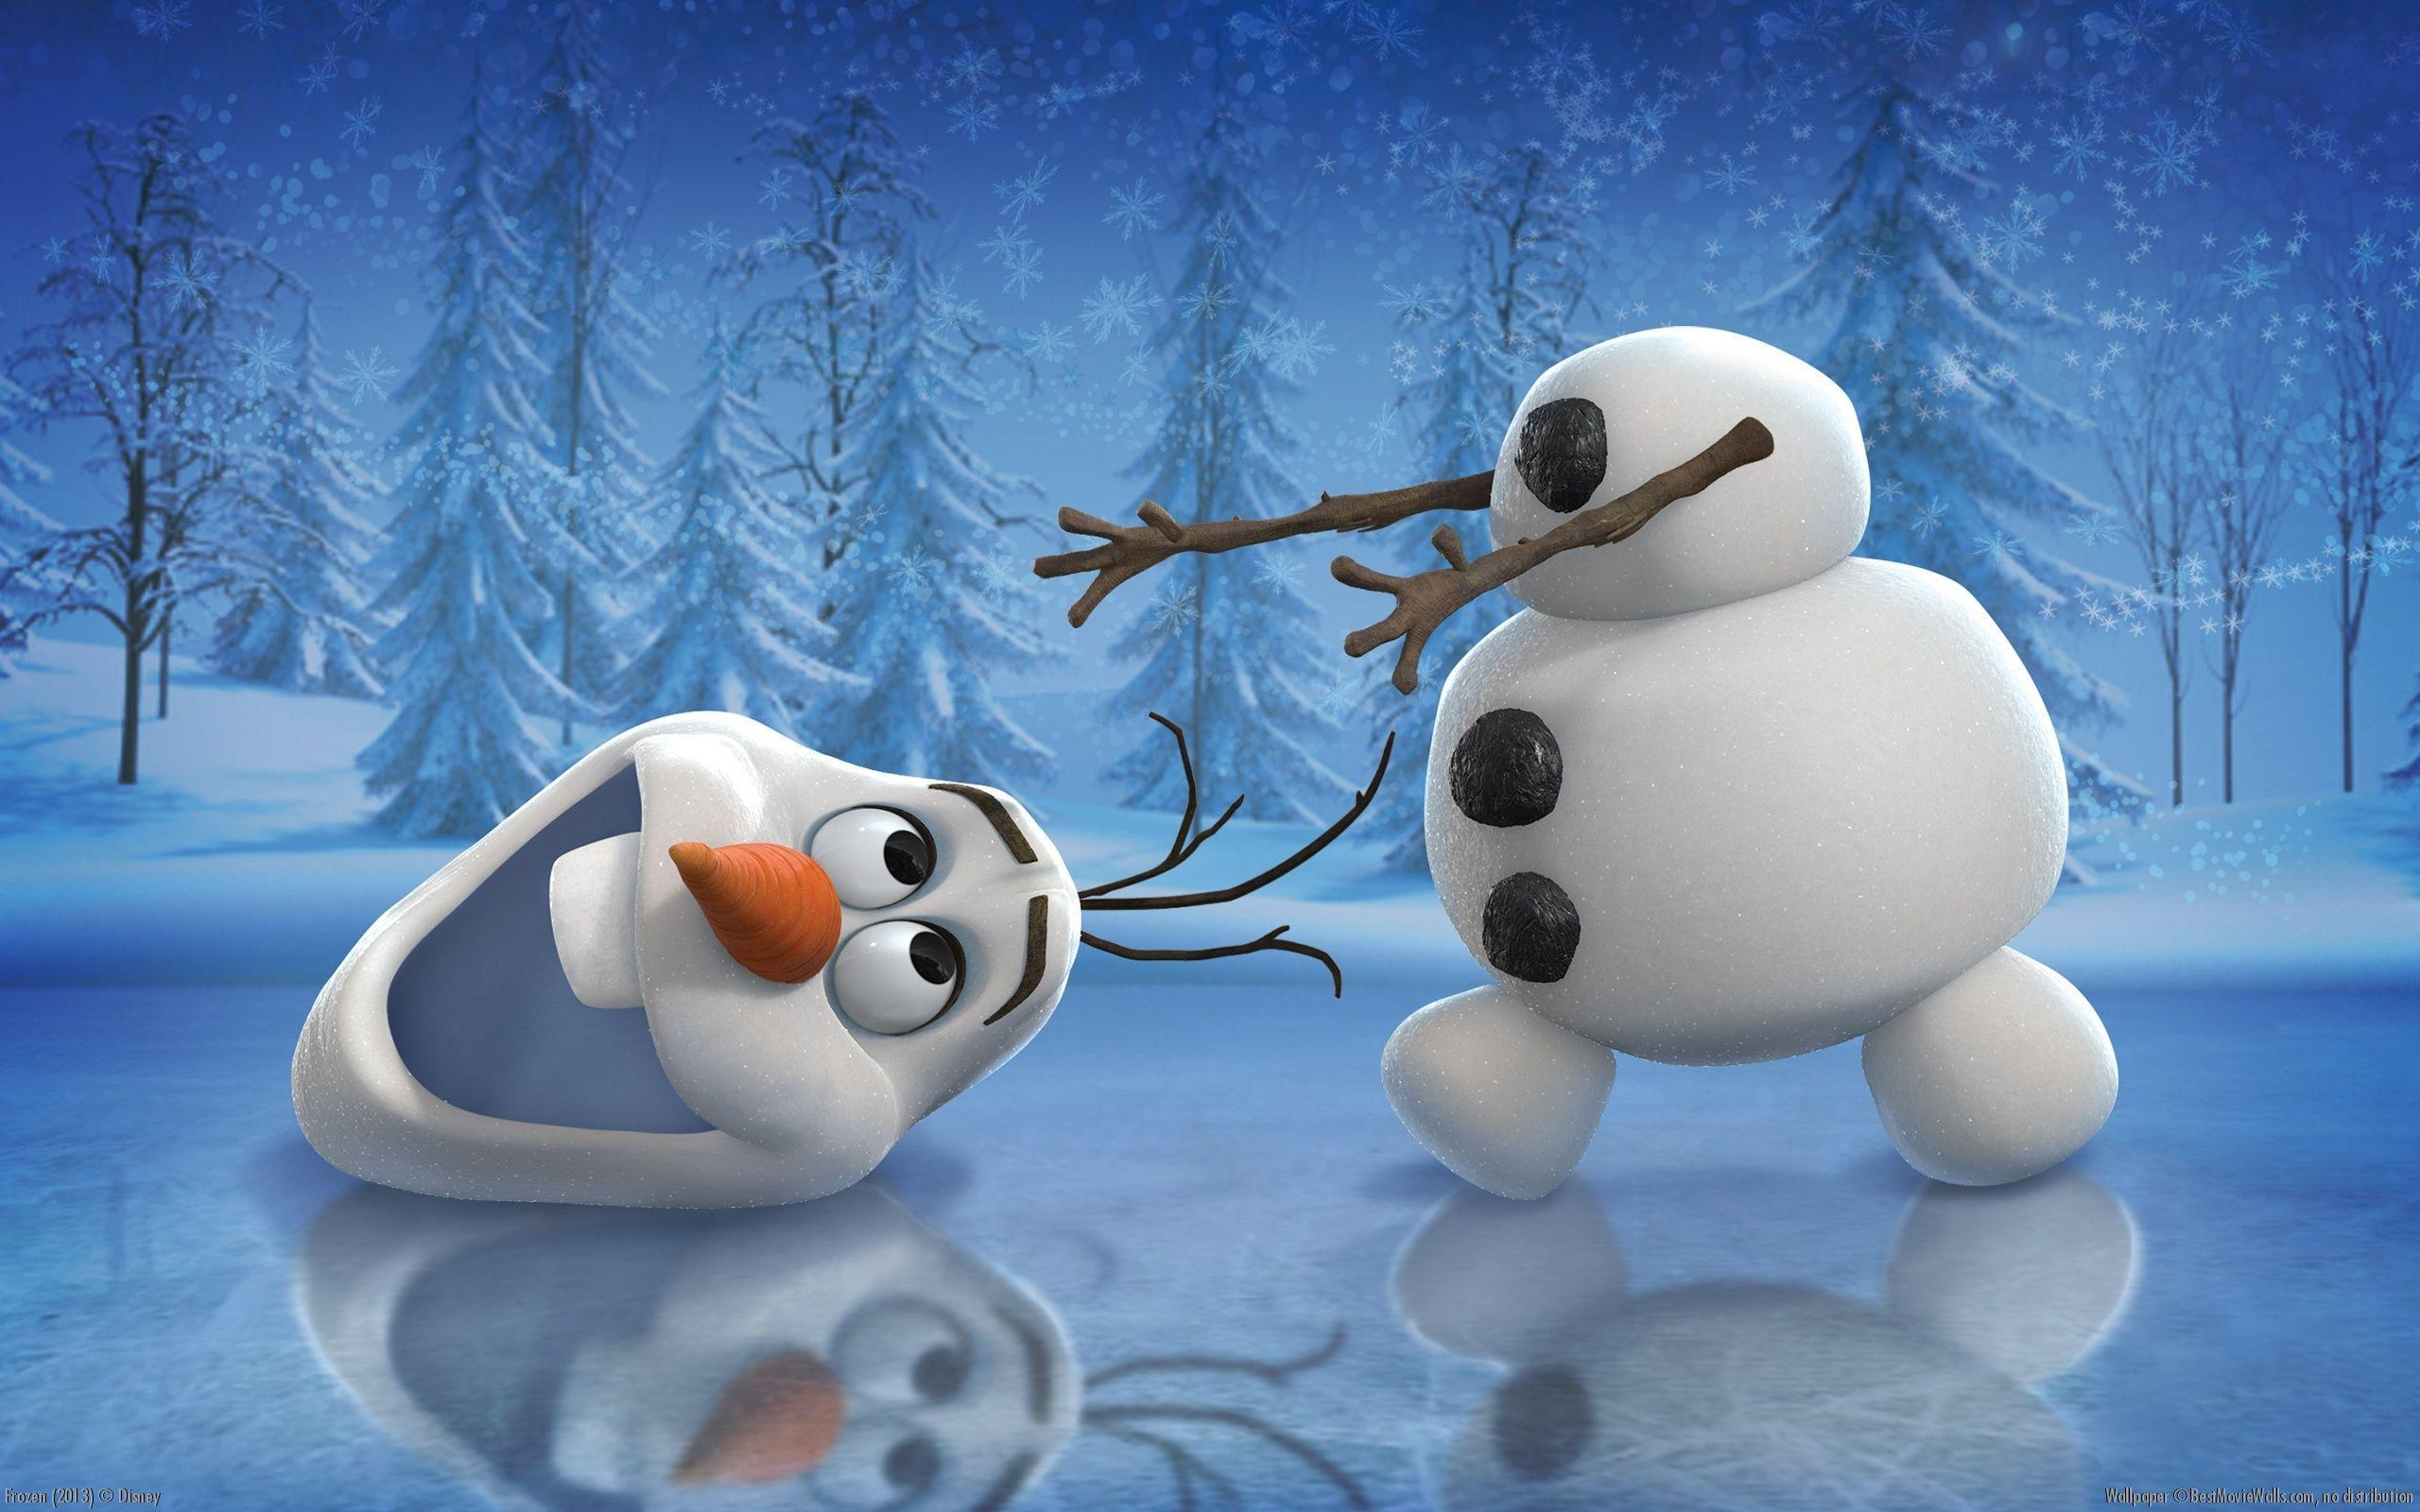 The Most Amazing & Best 'Frozen' Wallpapers On The Web